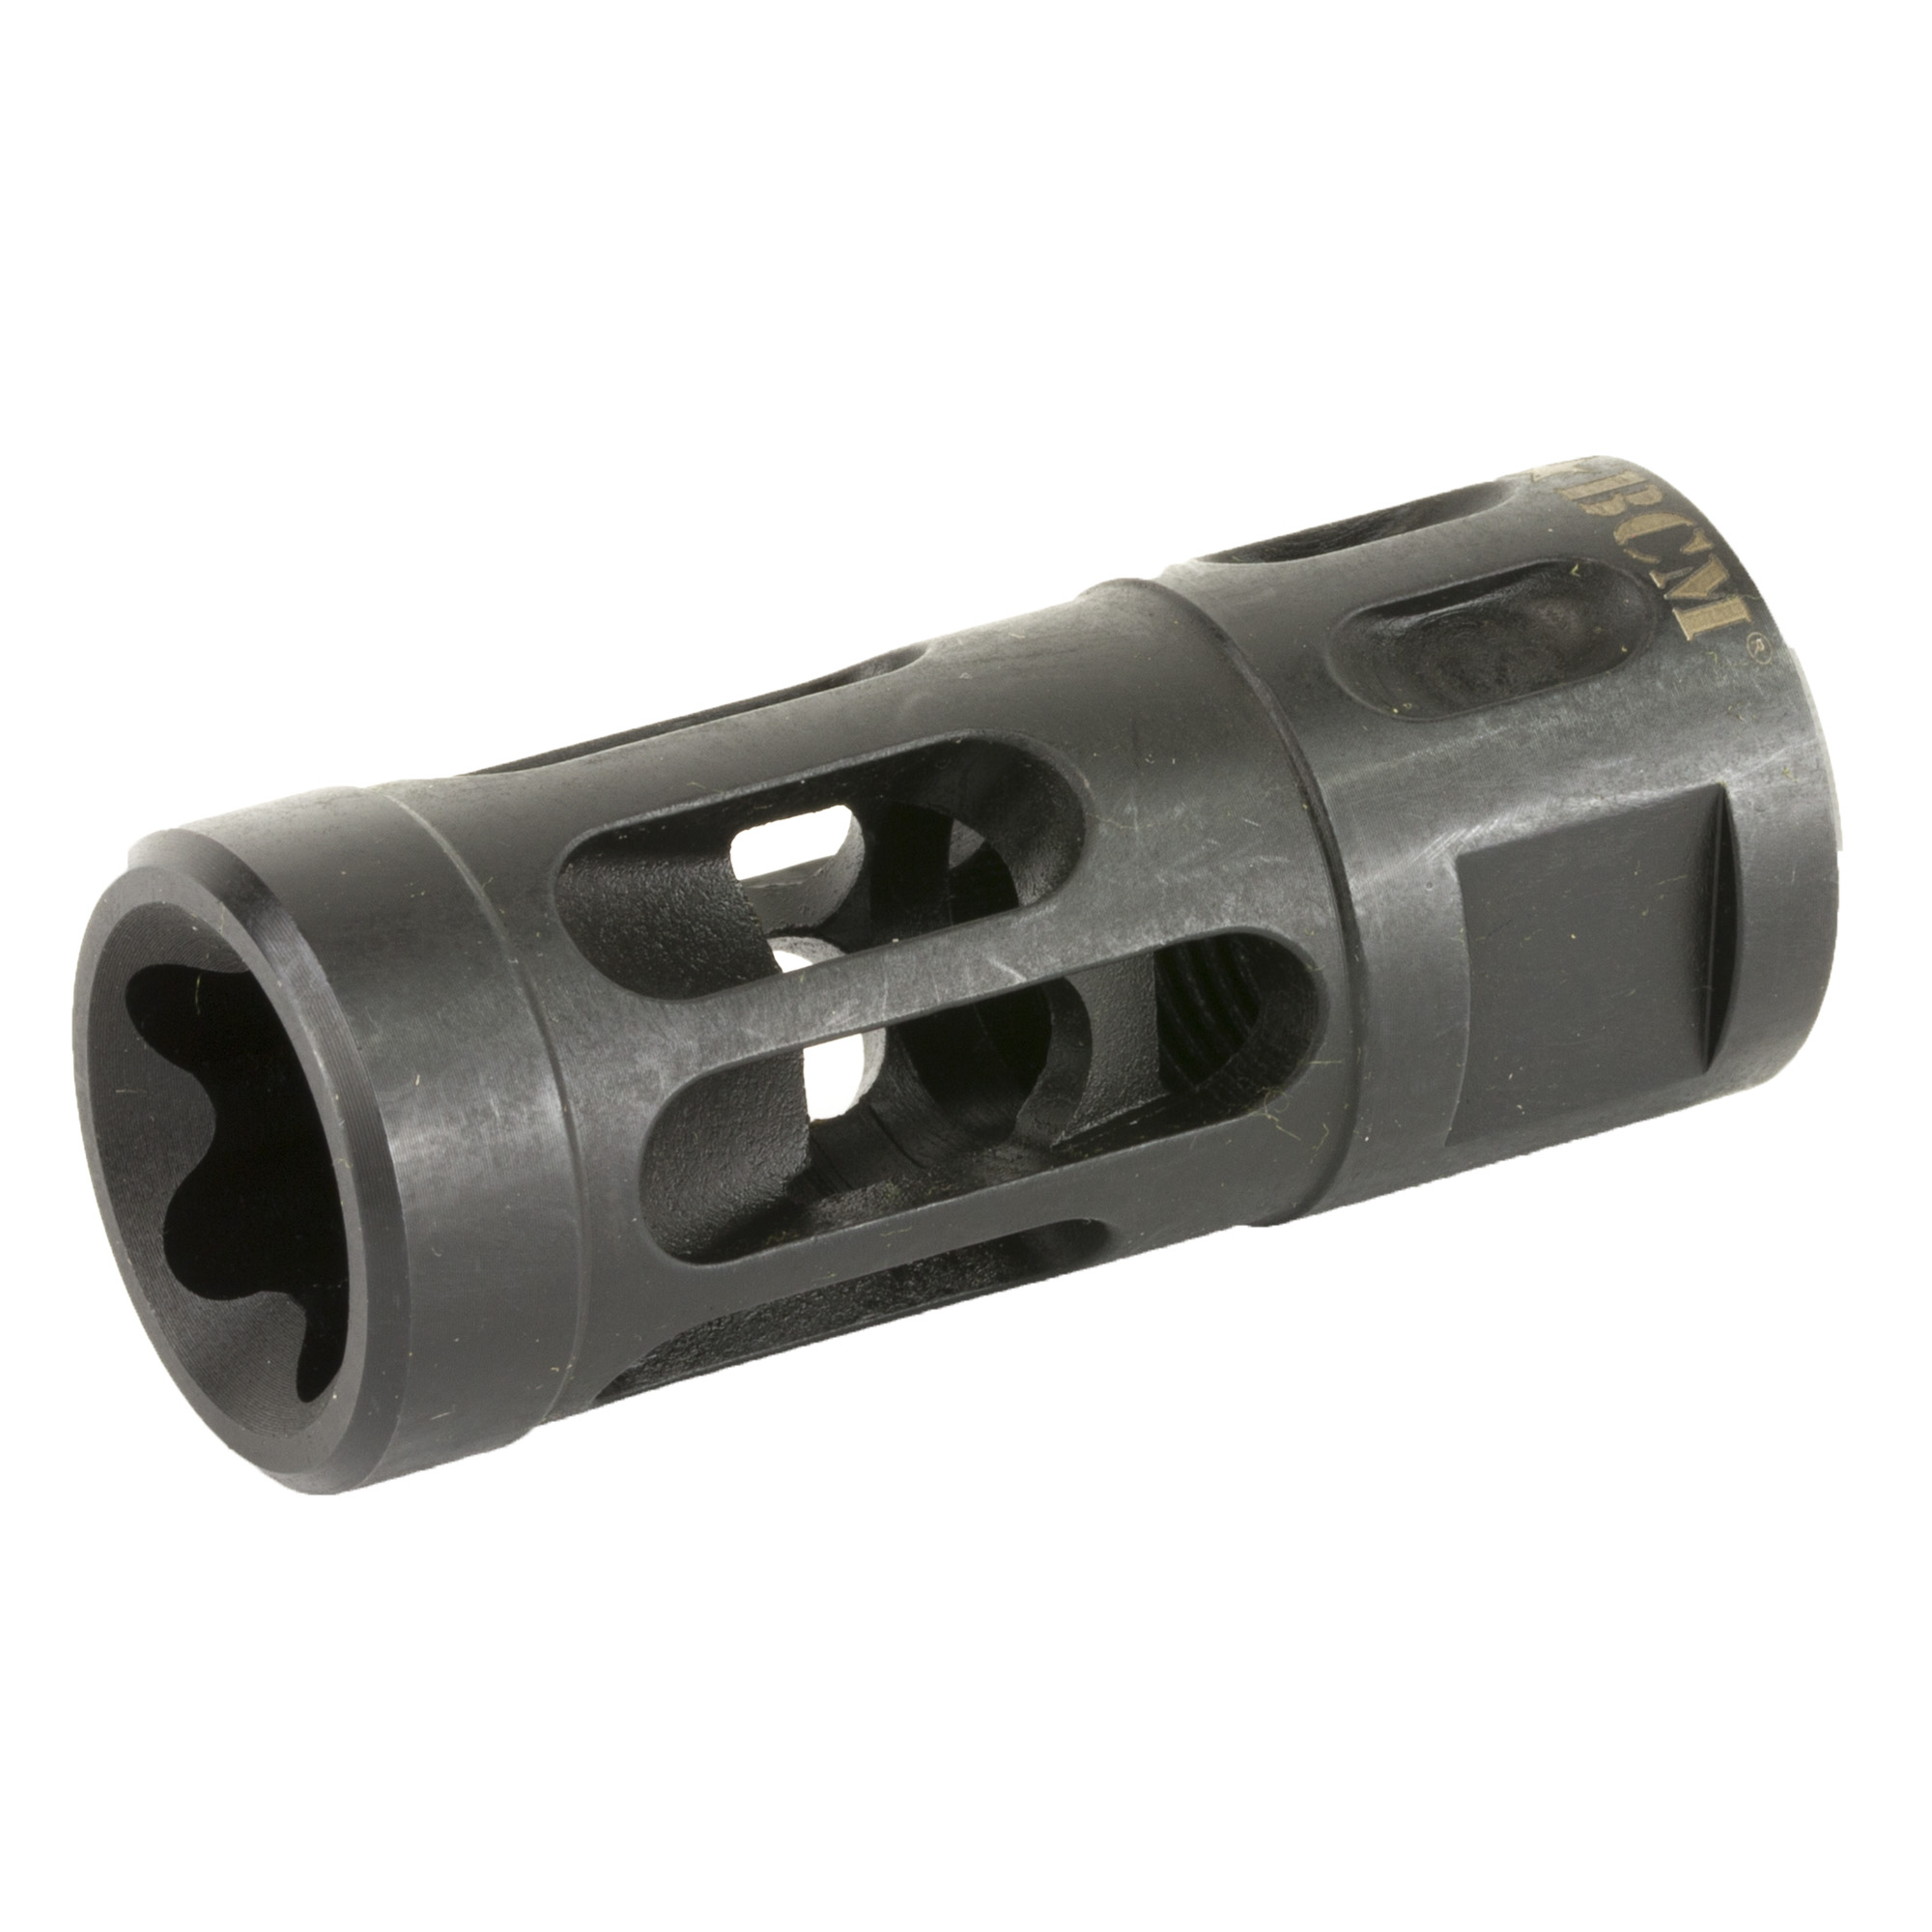 Dual action brake minimizes side pressure and designed to have much less noise associated with typical compensators. Makes it perfect for working in teams for CQB. It is a compensator that is built for the 21st Century Gunfighter!